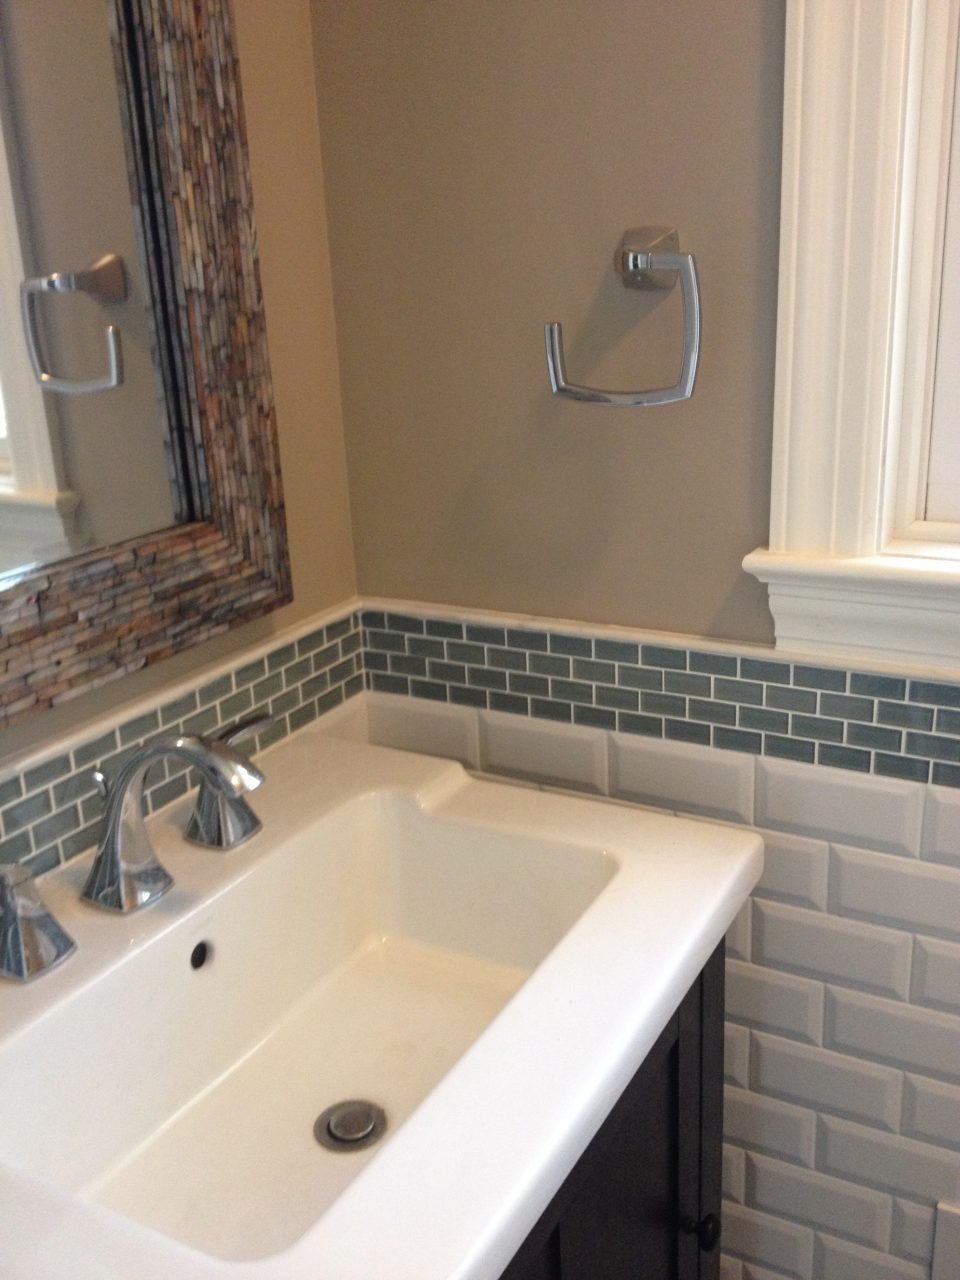 Special Glass Tile Backsplash In Bathroom Awesome Design Ideas 4091